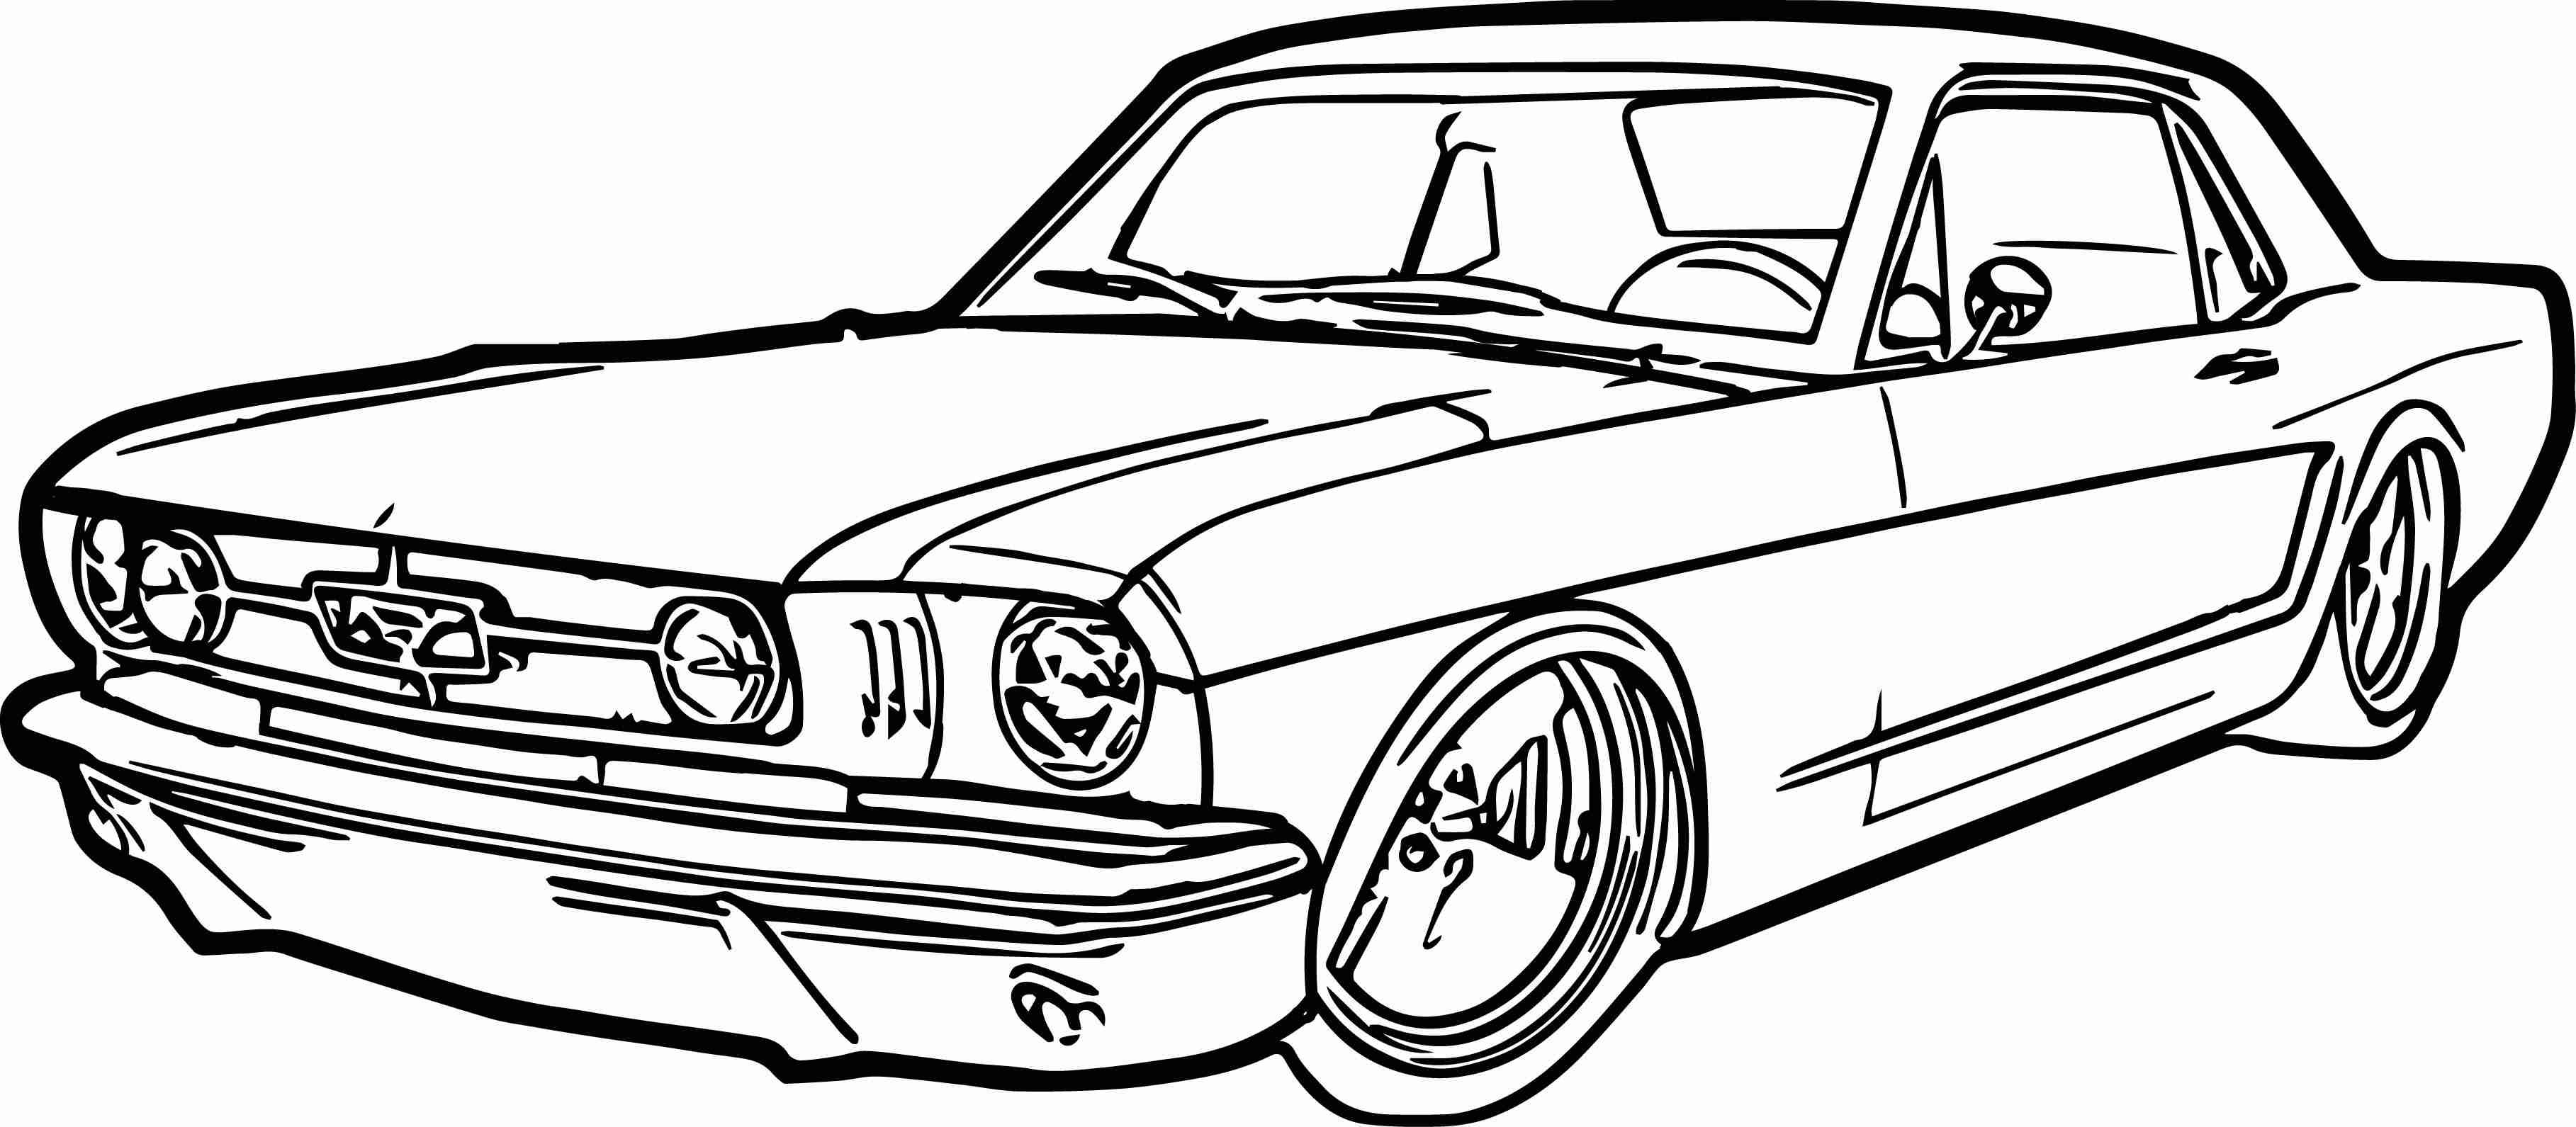 67 Mustang Coloring Pages at GetColorings.com | Free ...